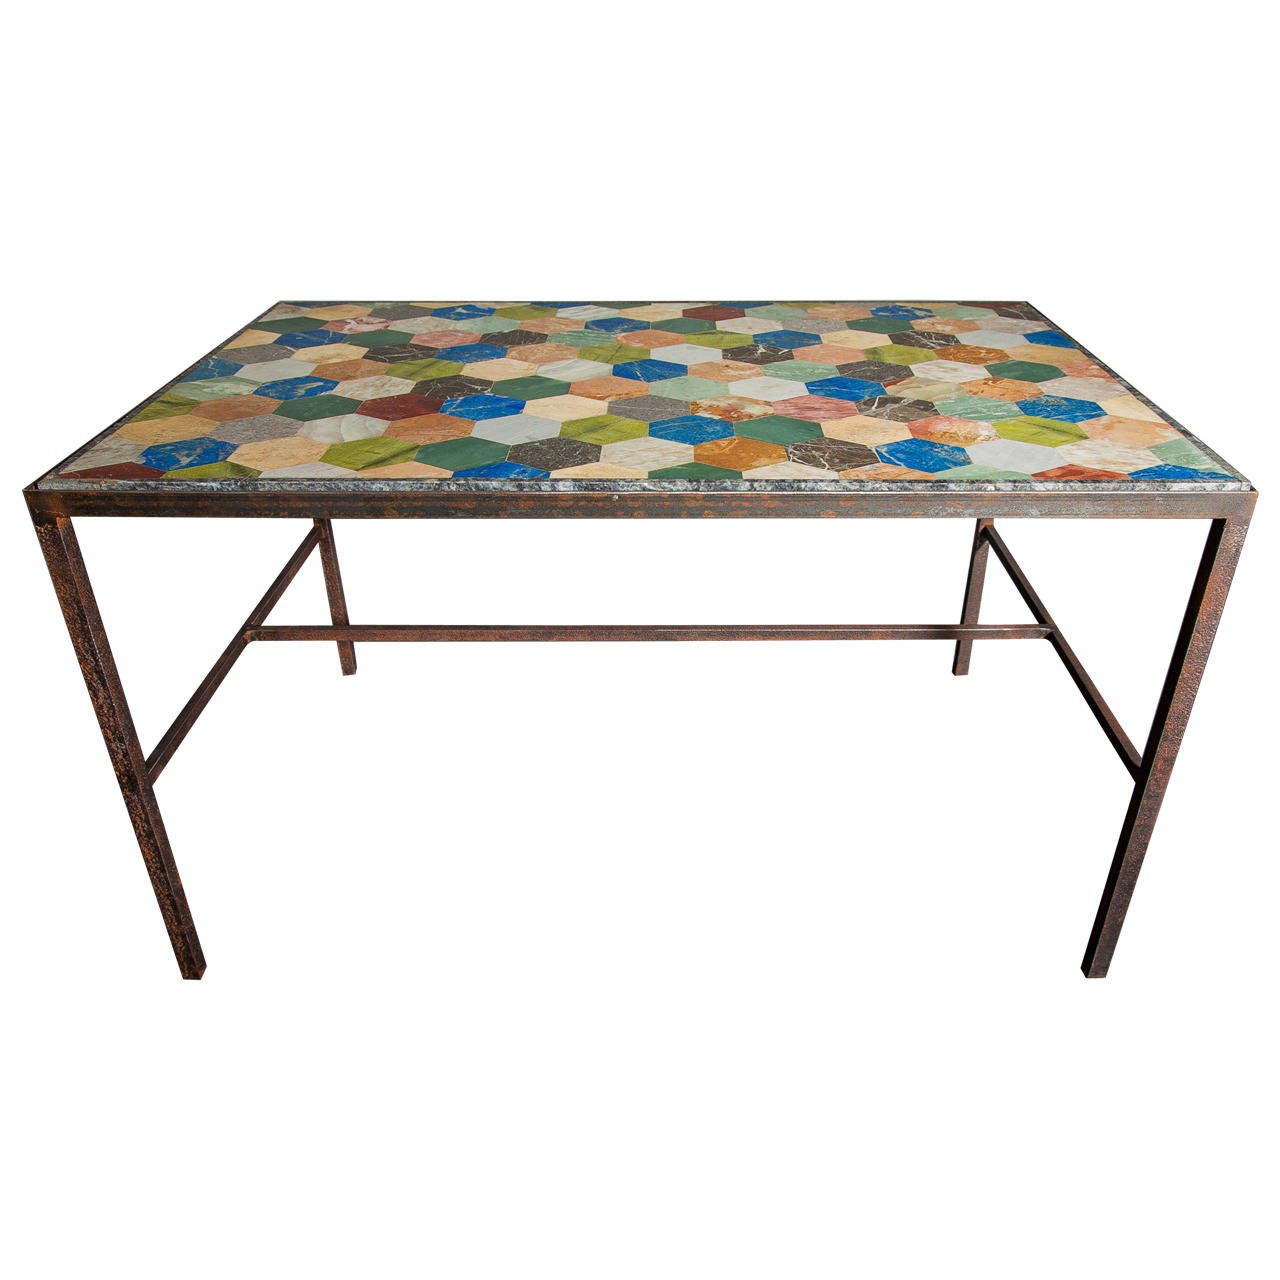 Italian Multi Colored Marble Top Table At 1stdibs